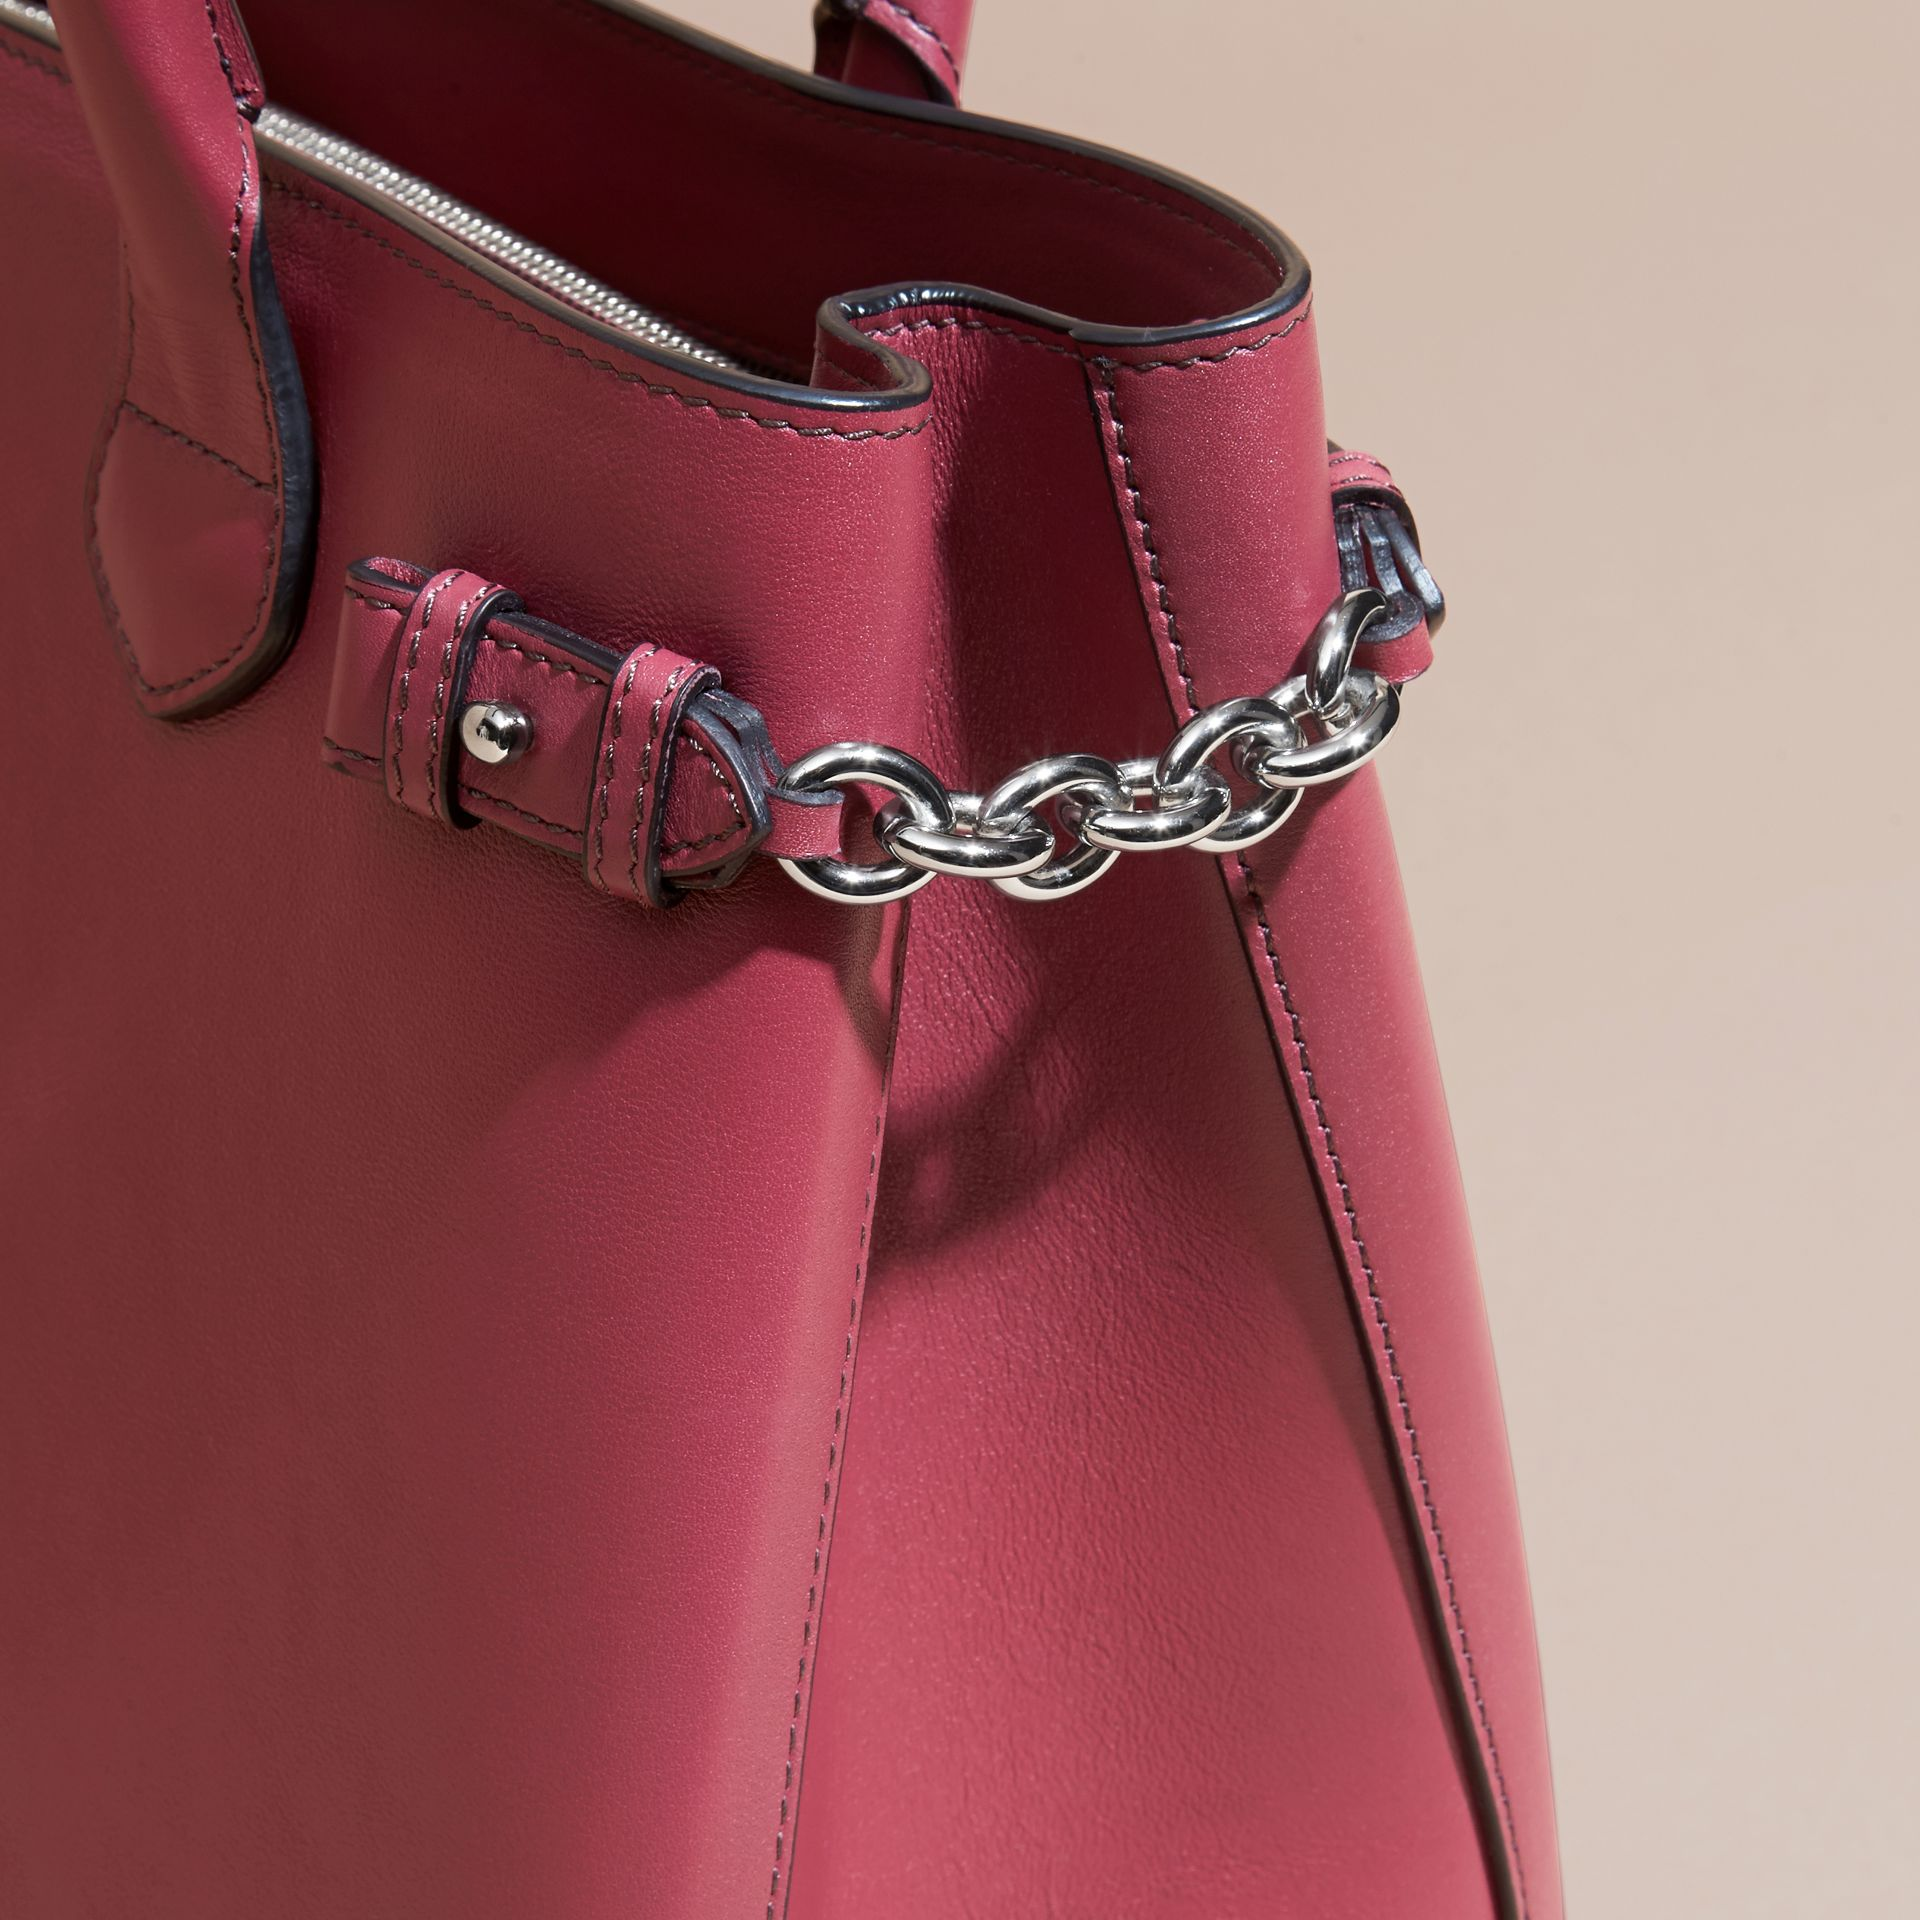 Garnet pink The Medium Banner in Leather with Chain Detail Garnet Pink - gallery image 2